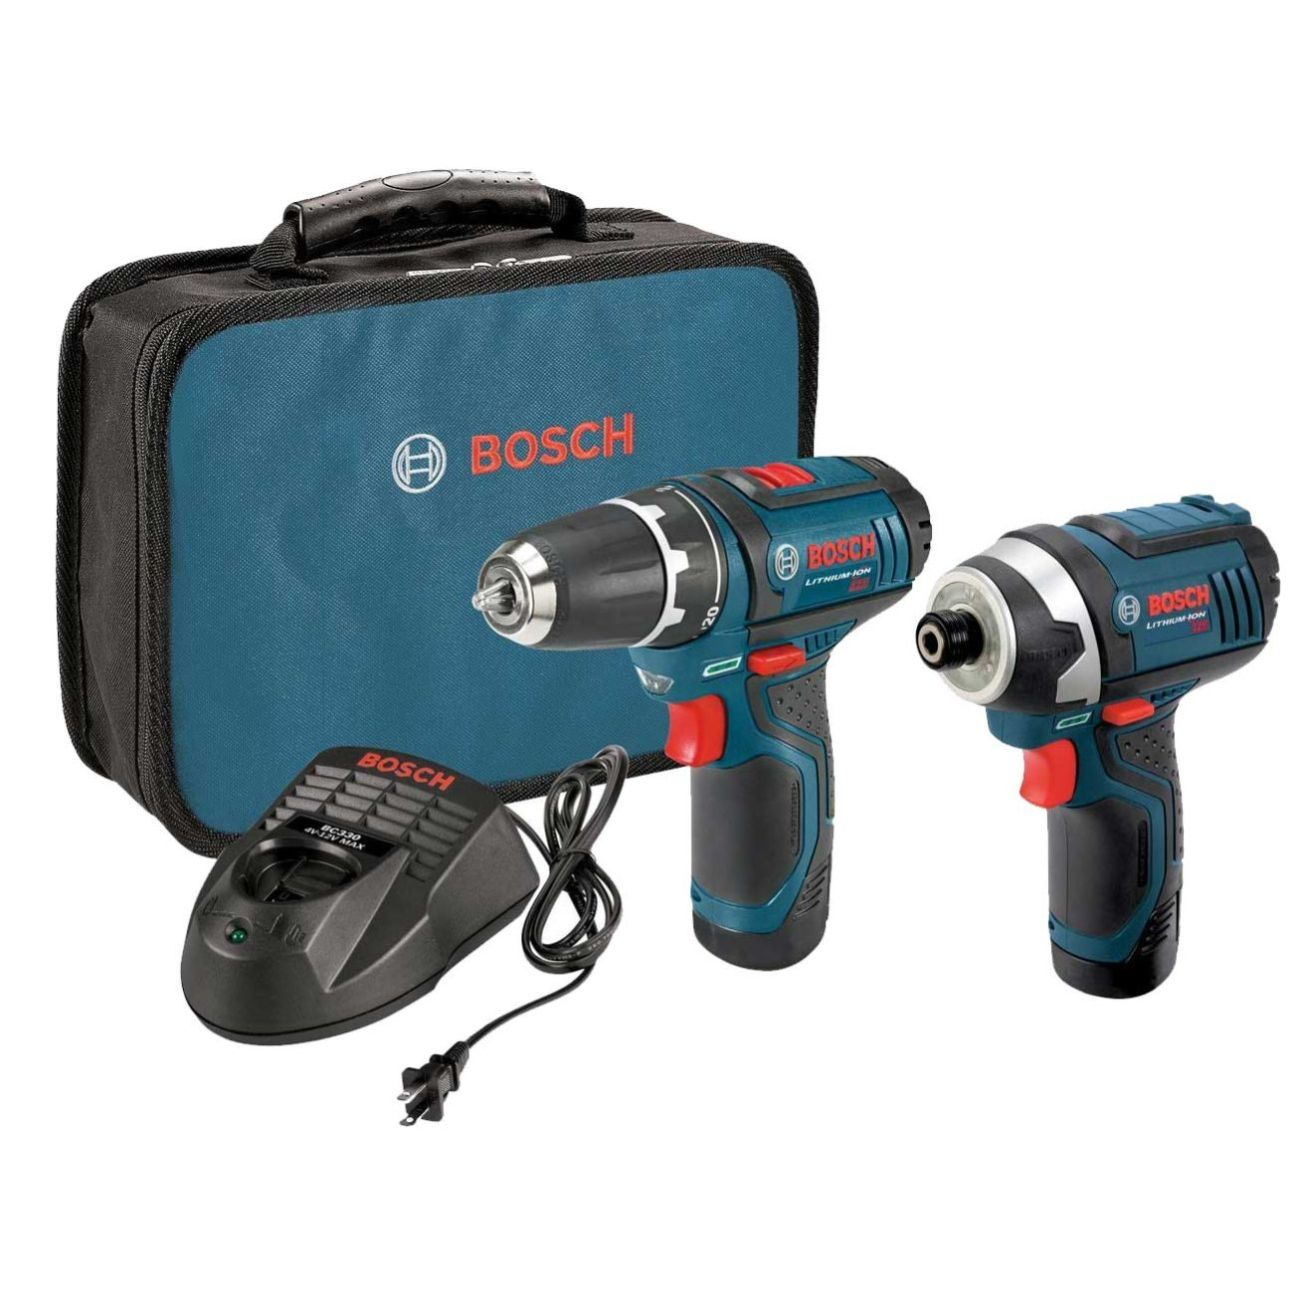 12 Volt PS31/PS41 Lithium-Ion Combo Kit CLPK22-120 Bosch Tools